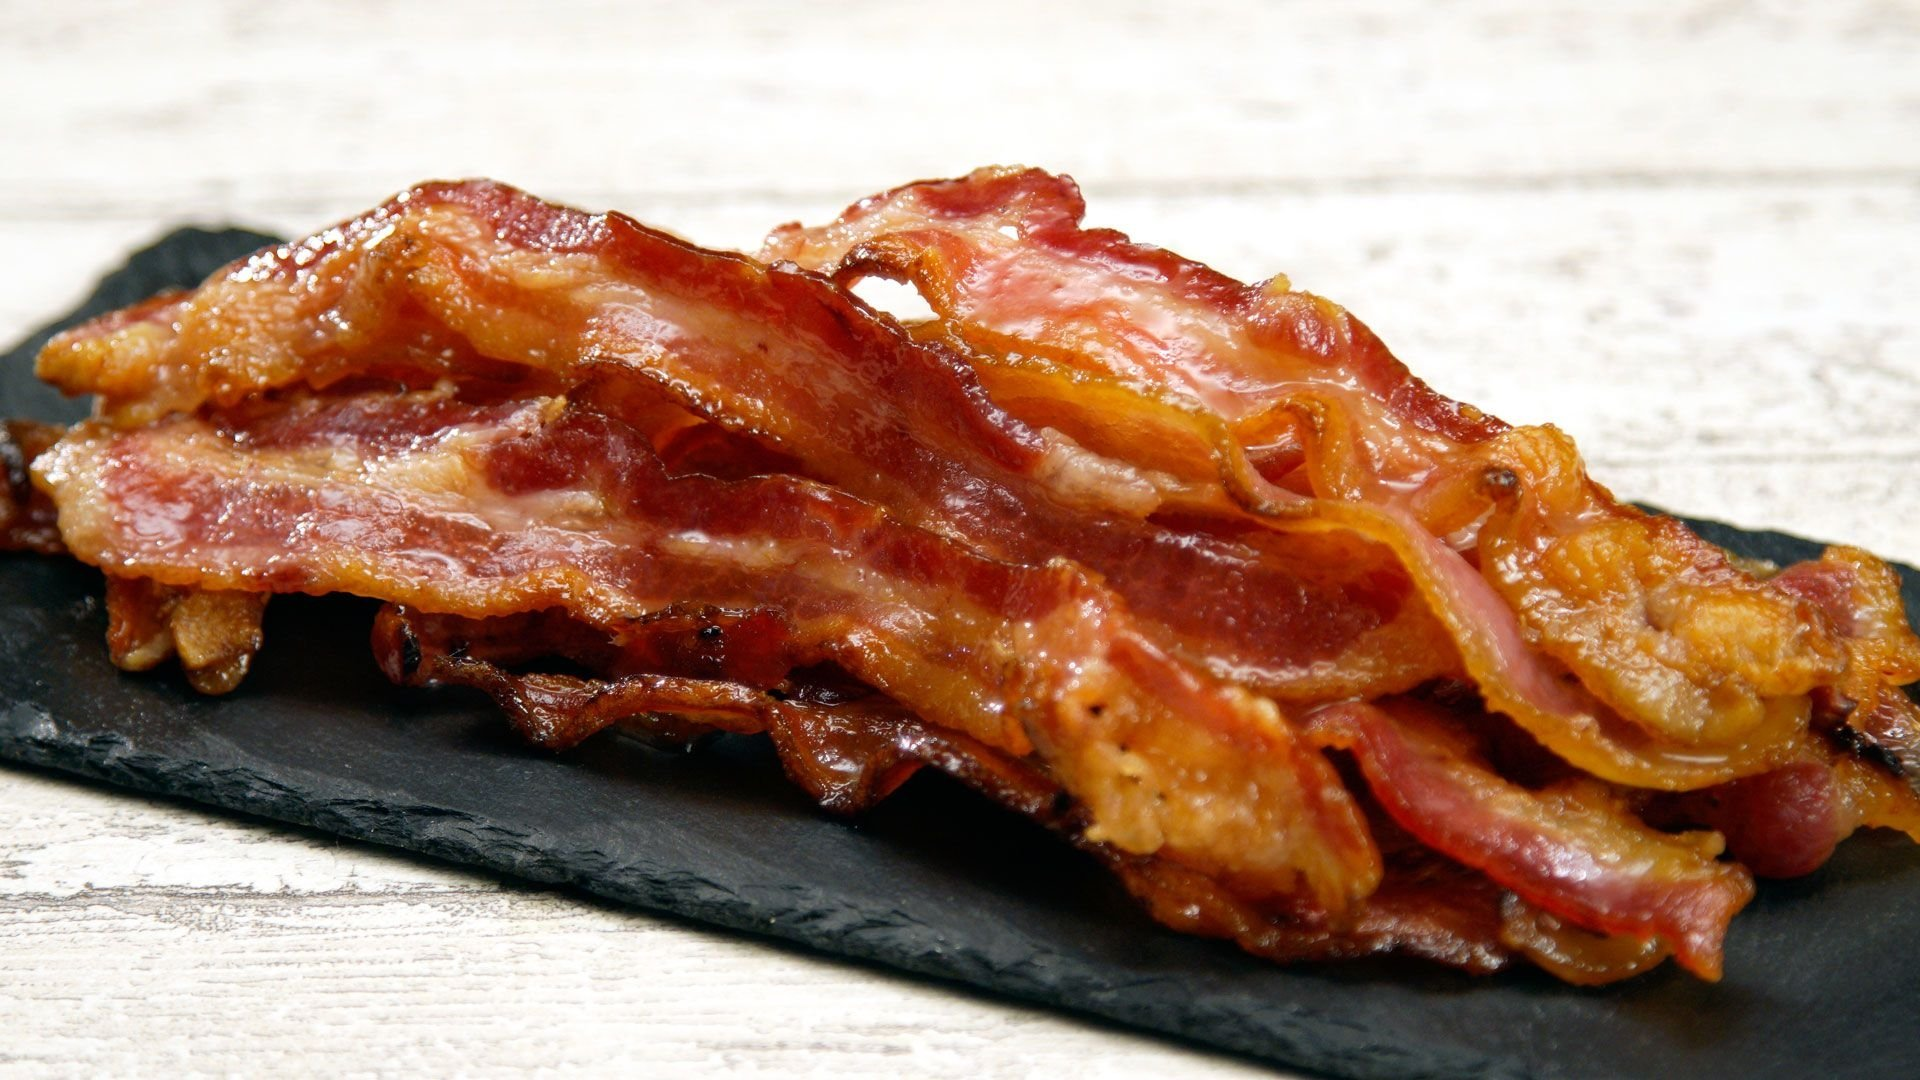 Bacon Wallpaper Free